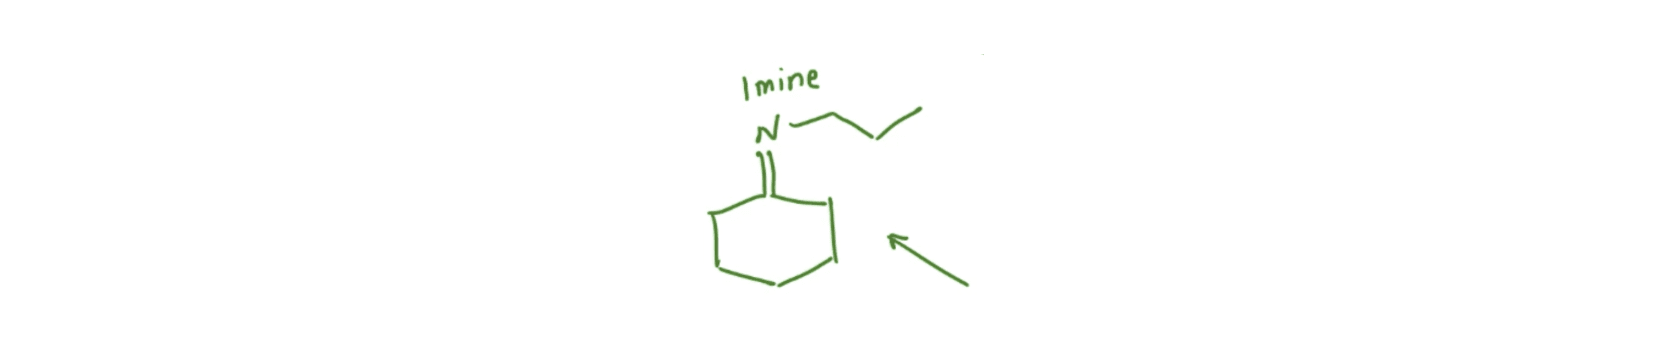 Imine Structure